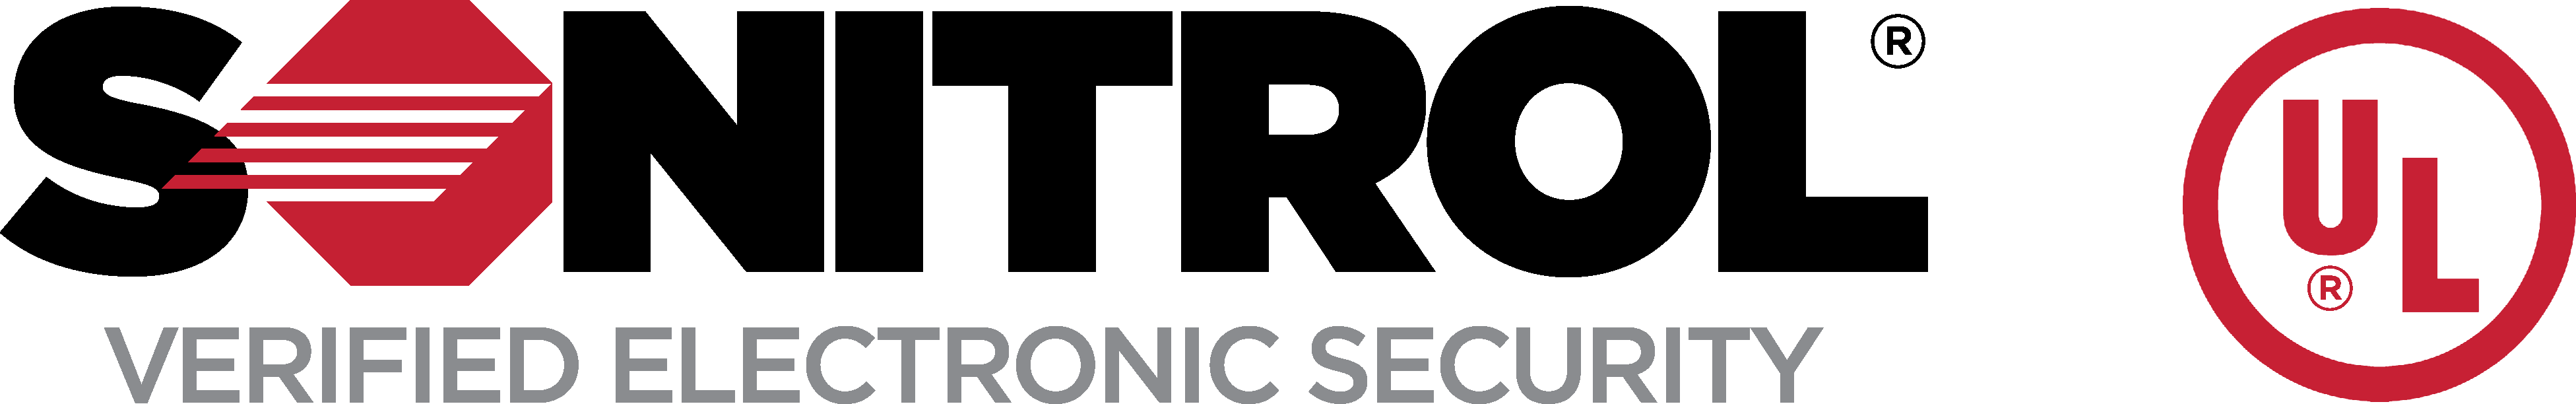 Verified Electronic Security